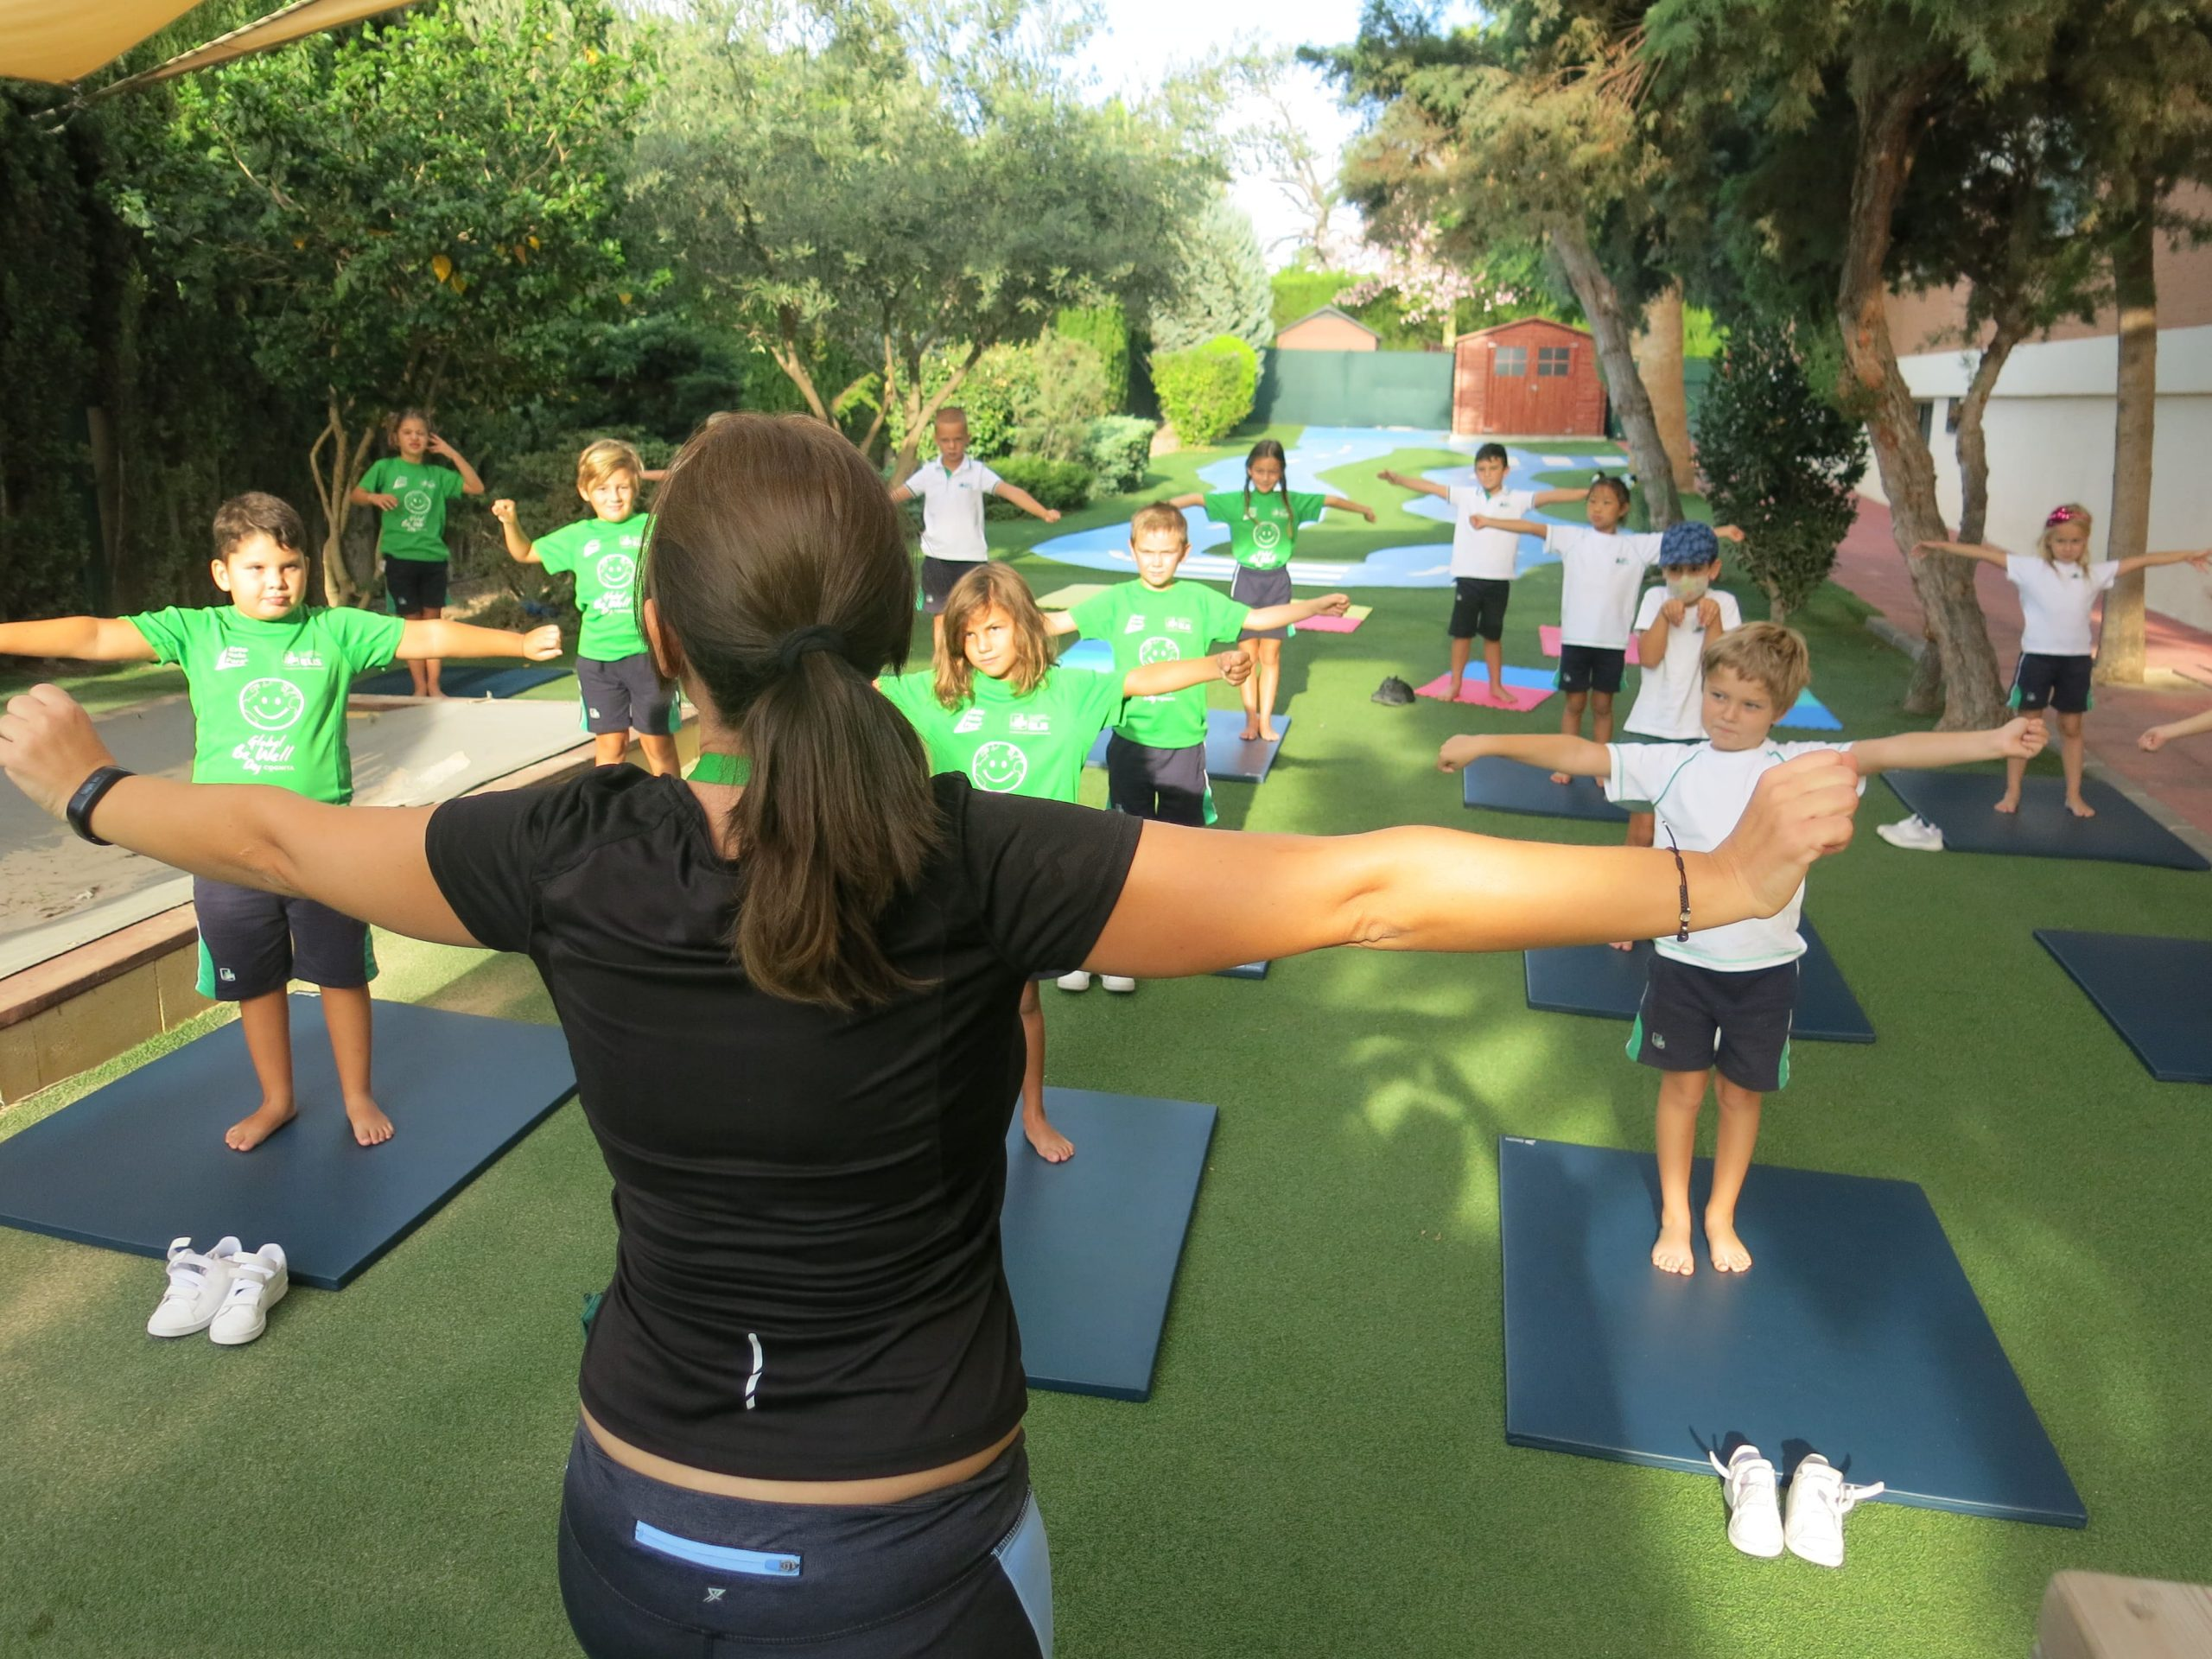 ELIS Villamartín celebrates its commitment to wellbeing with a second Global Be Well Day